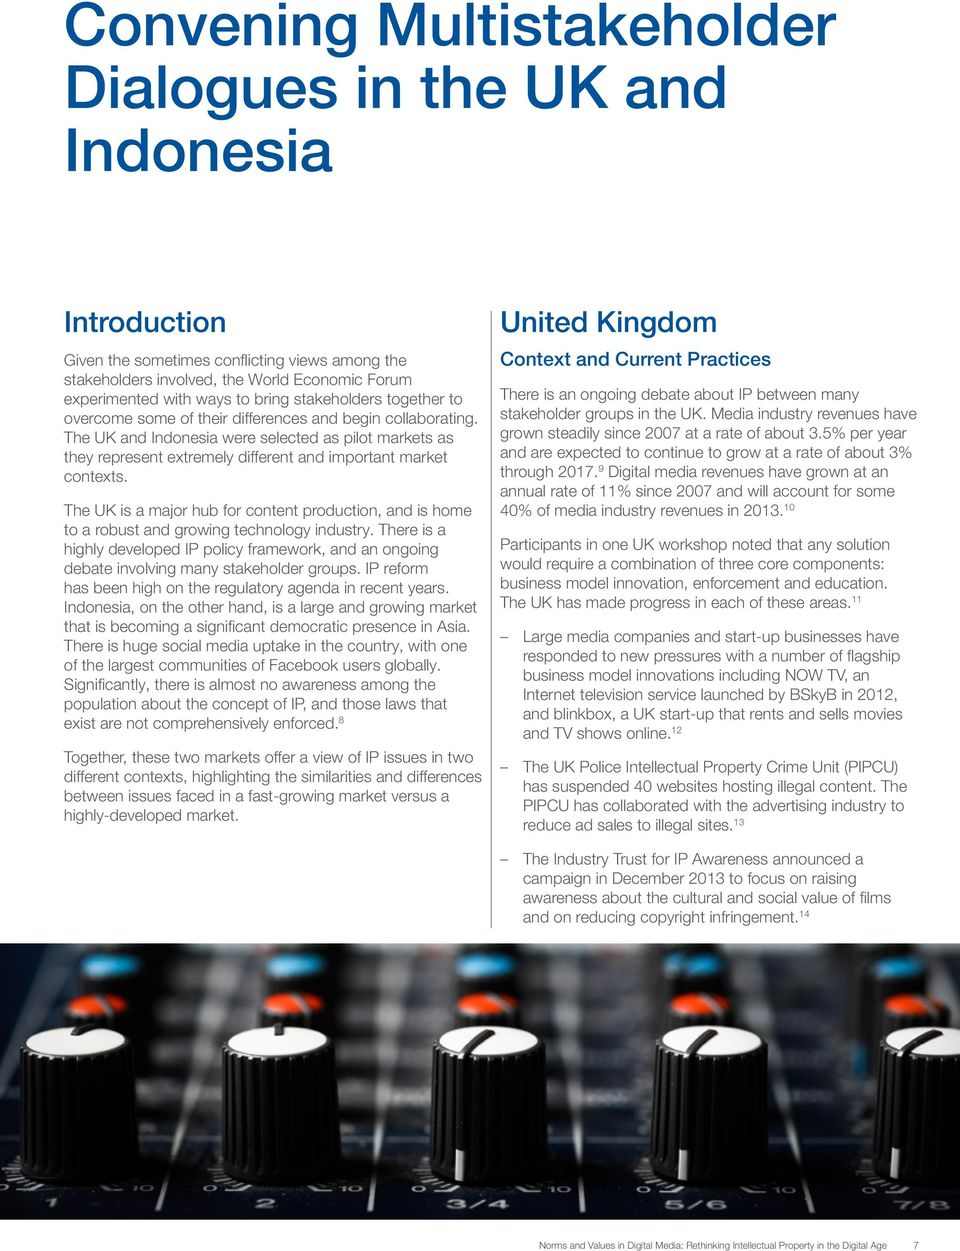 The UK and Indonesia were selected as pilot markets as they represent extremely different and important market contexts.